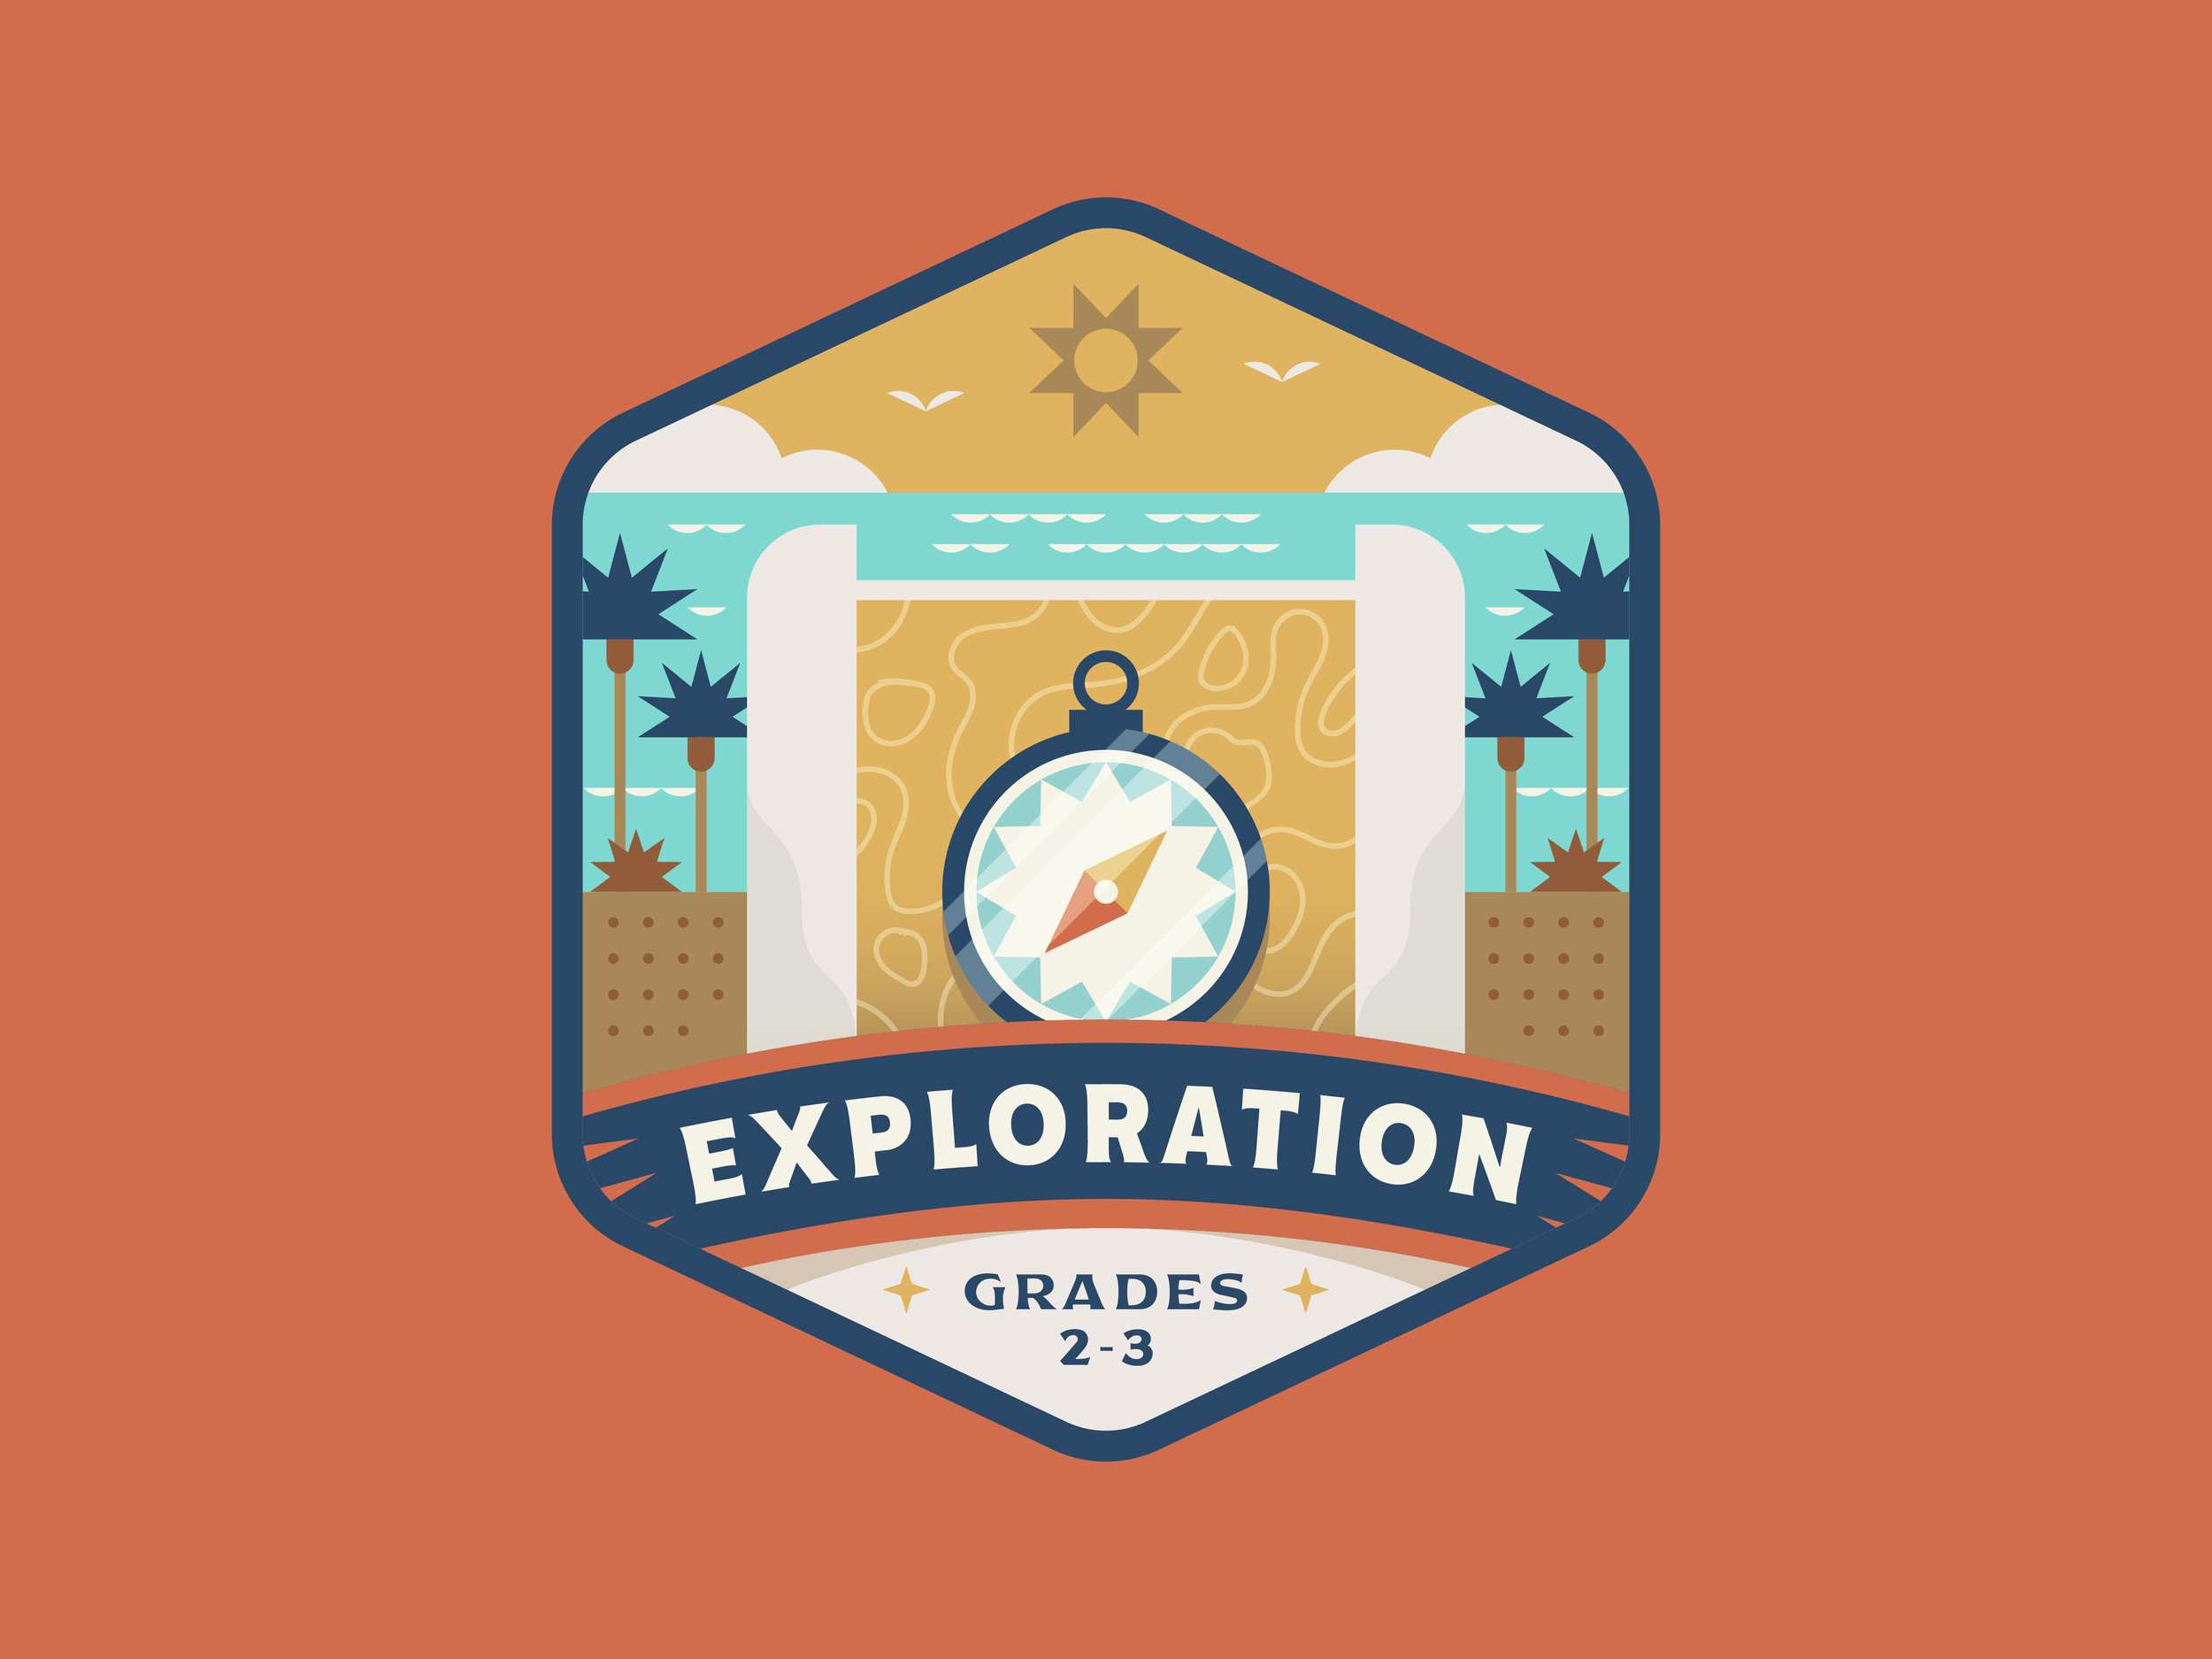 exploration-logo.jpg